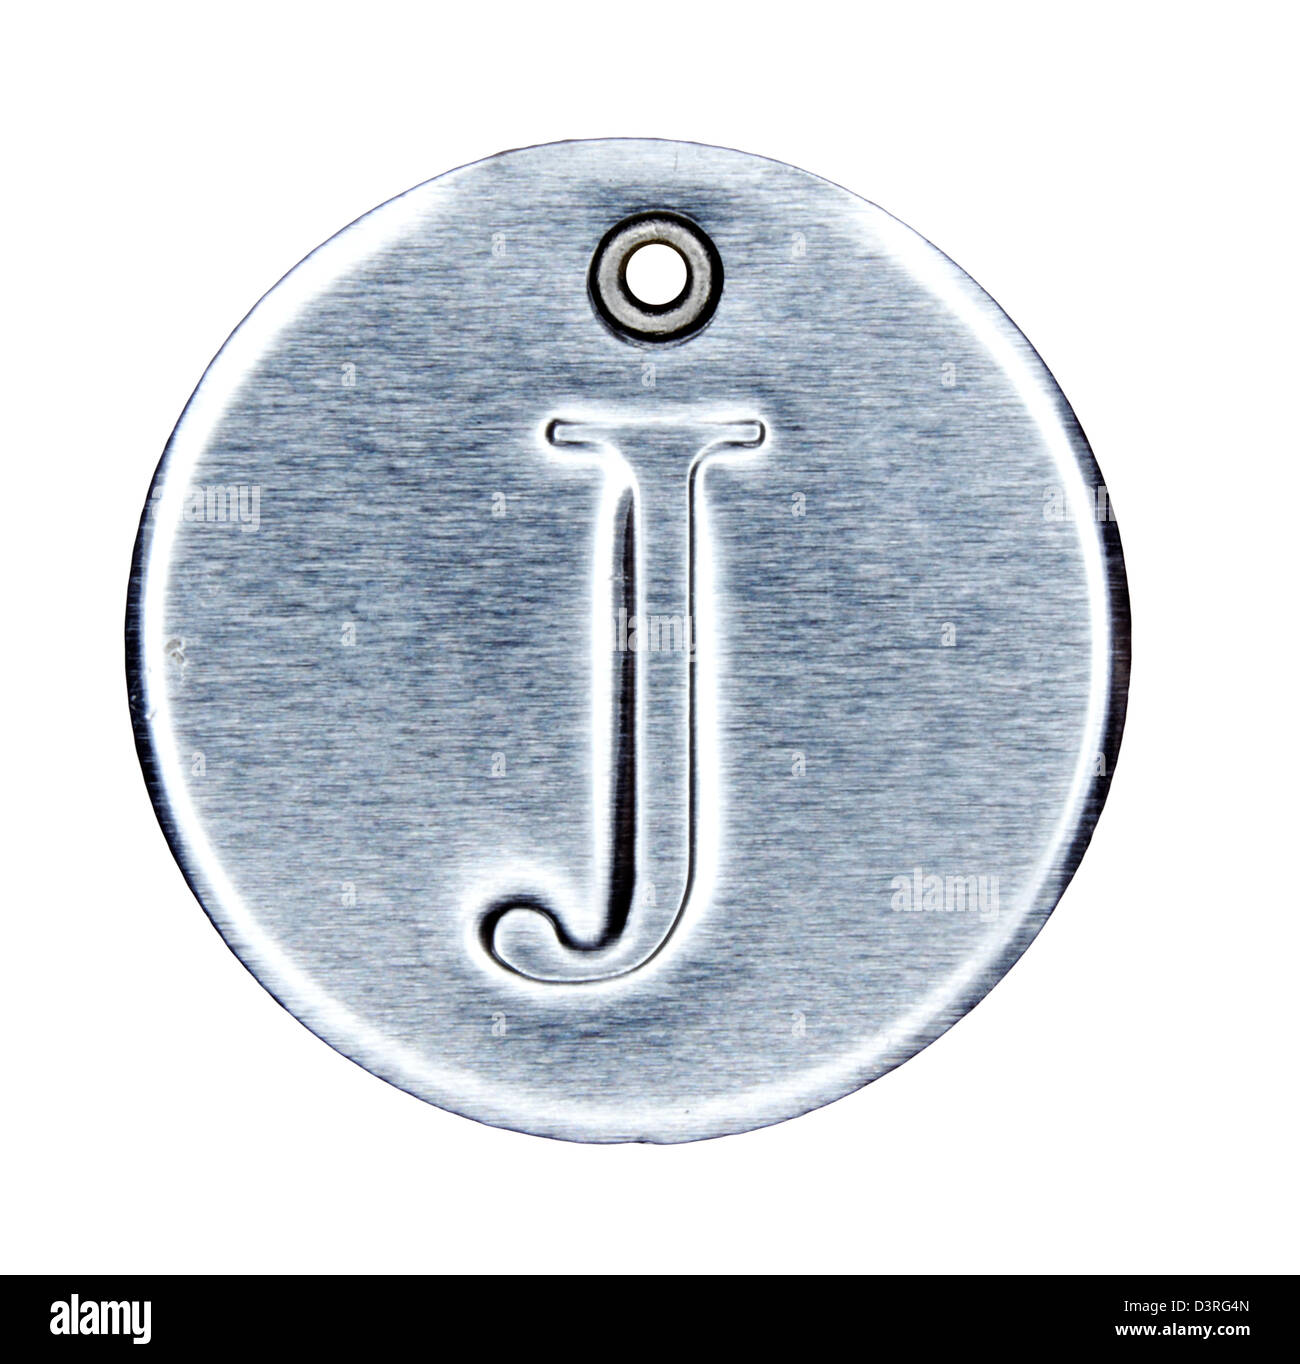 Brushed metal letter of the alphabet J - Stock Image